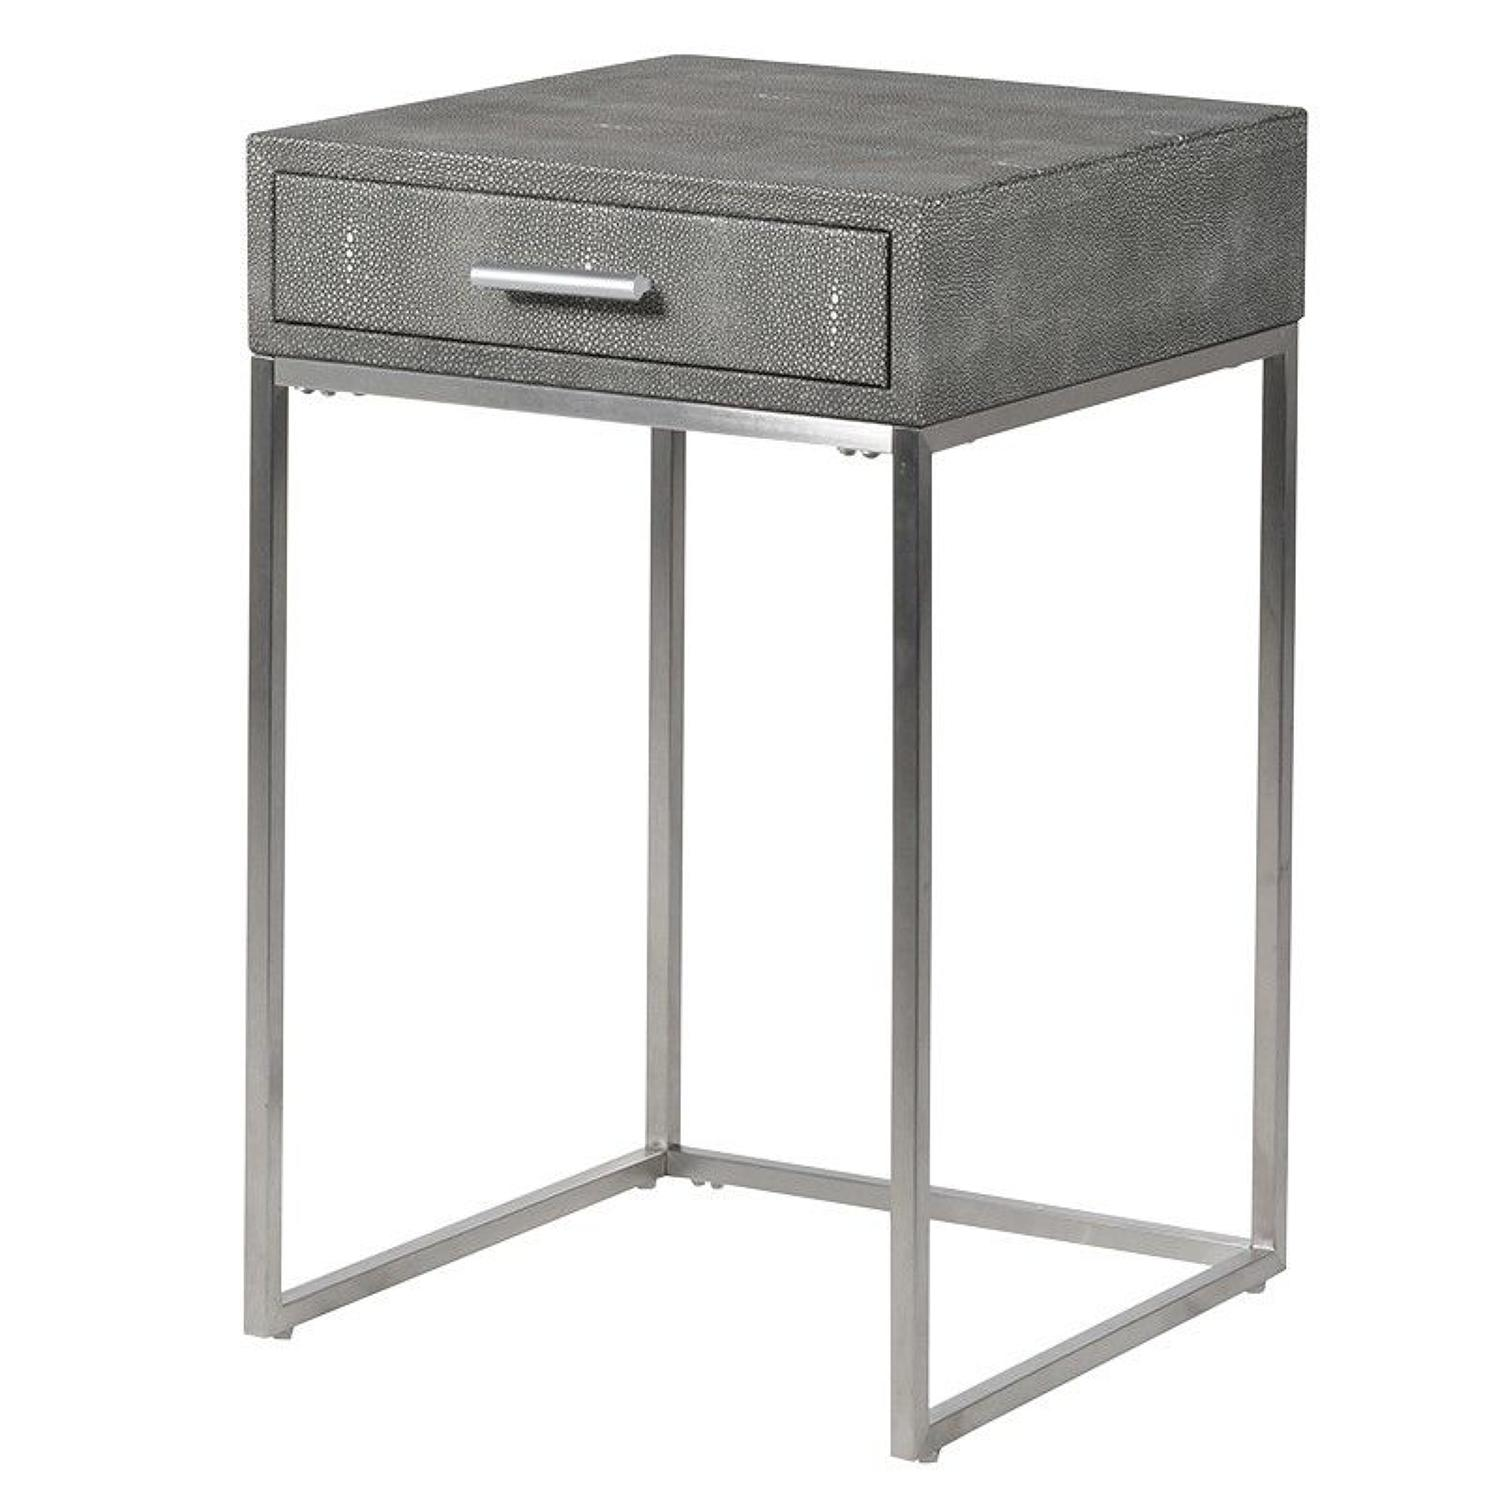 Faux shagreen leather side table with drawer